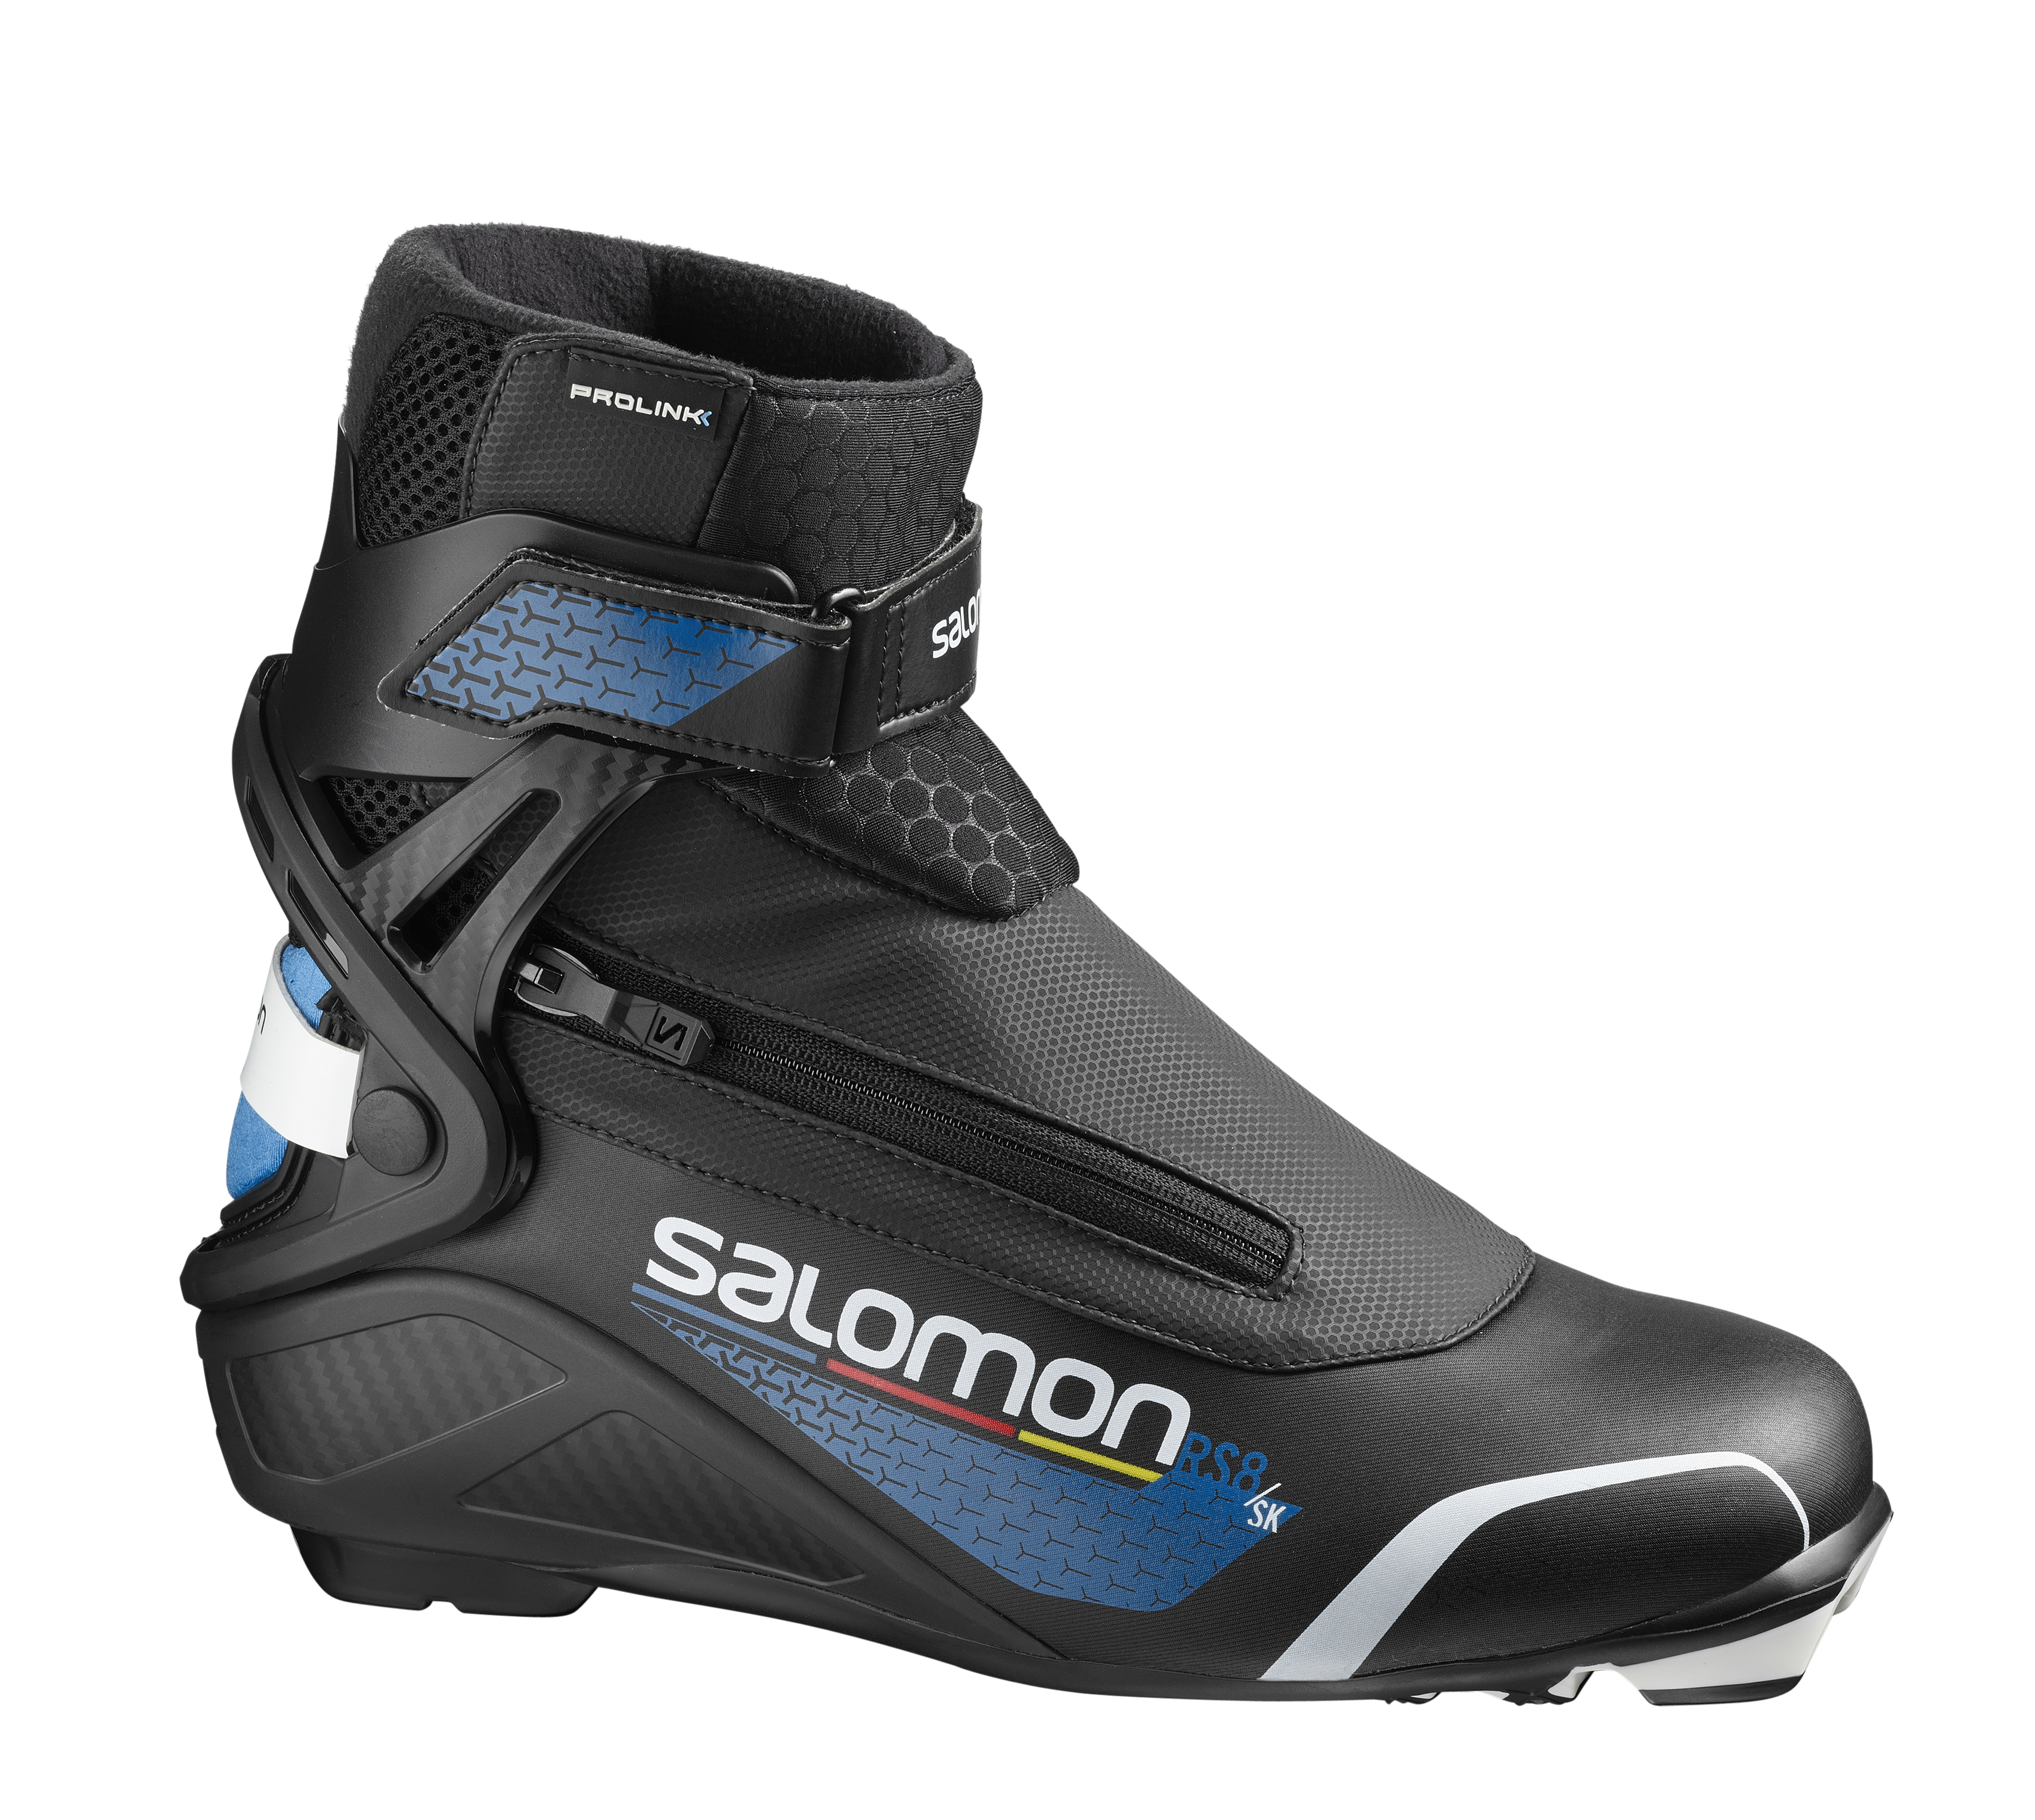 detail SALOMON RS 8 SKATE PROLINK 18/19